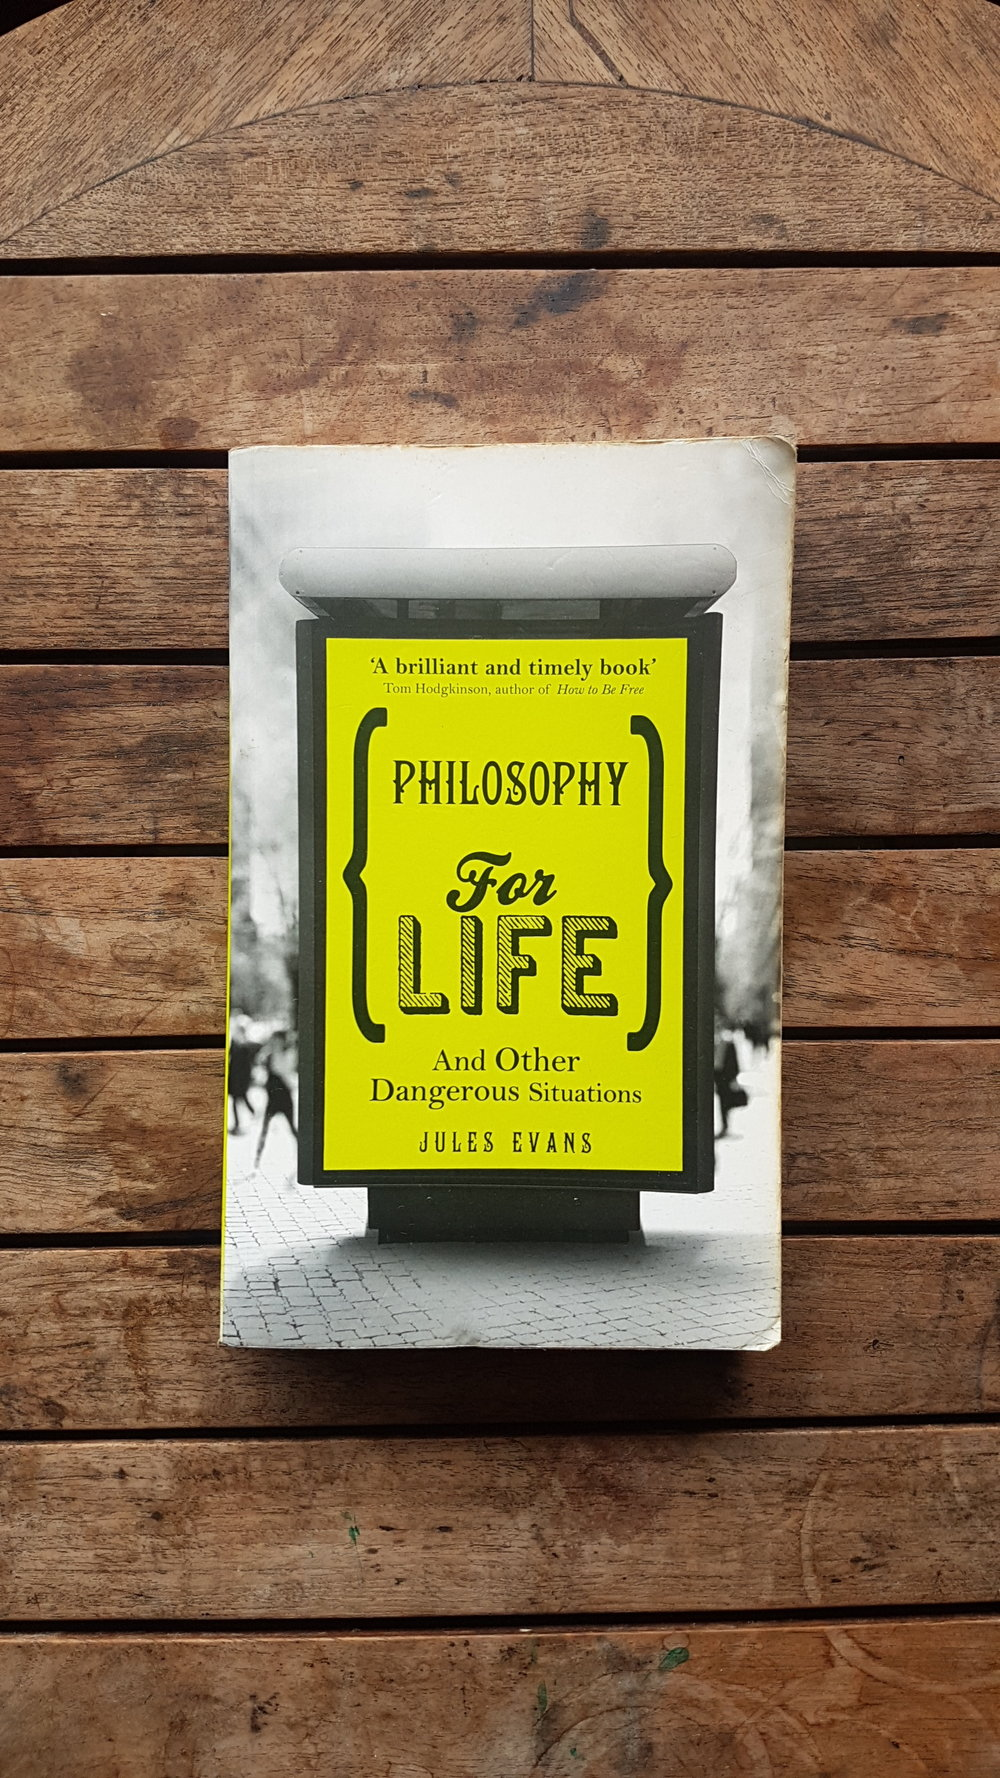 Philosophy for Life and Other Dangerous Situations: Ancient Philosophy for Modern Problems   by Jules Evans